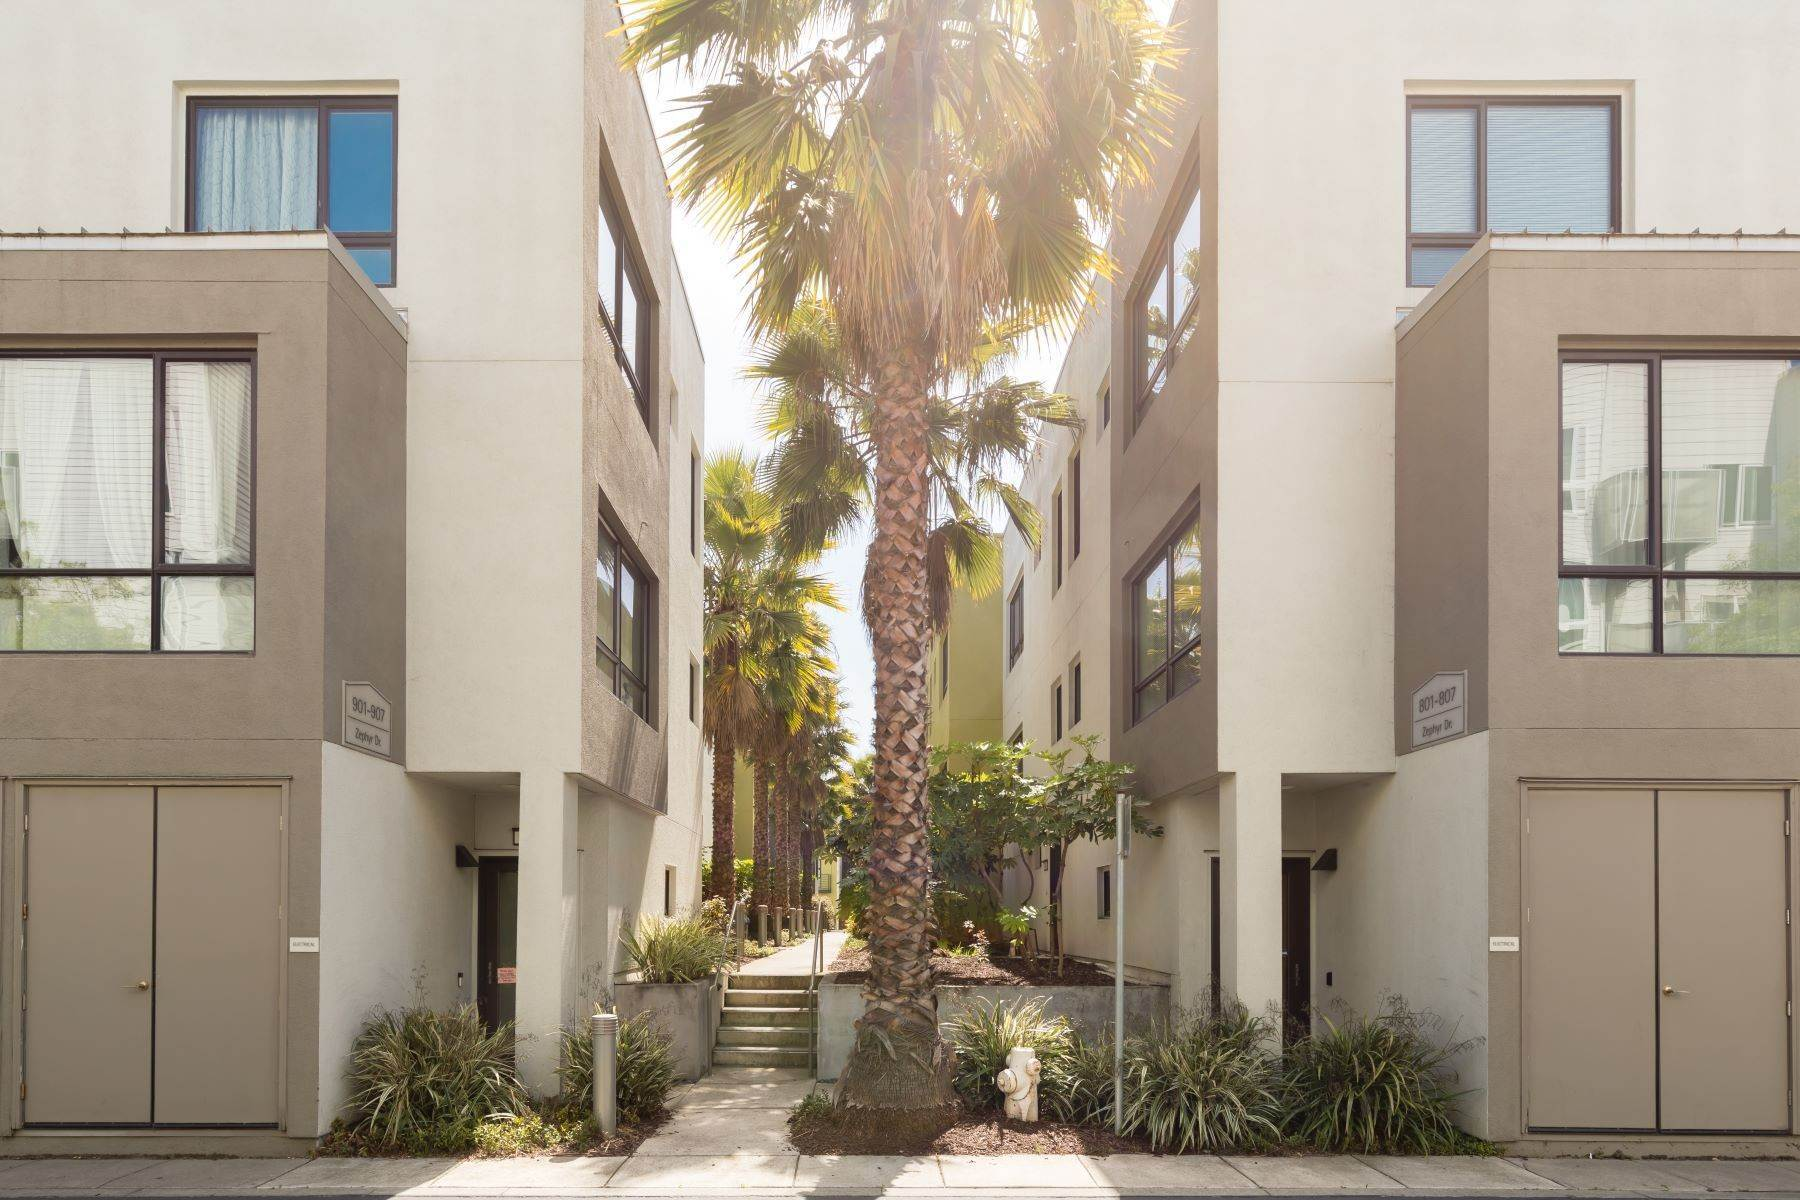 Condominiums for Sale at Newly Enhanced Stylish Condominium 806 Zephyr Drive Oakland, California 94607 United States